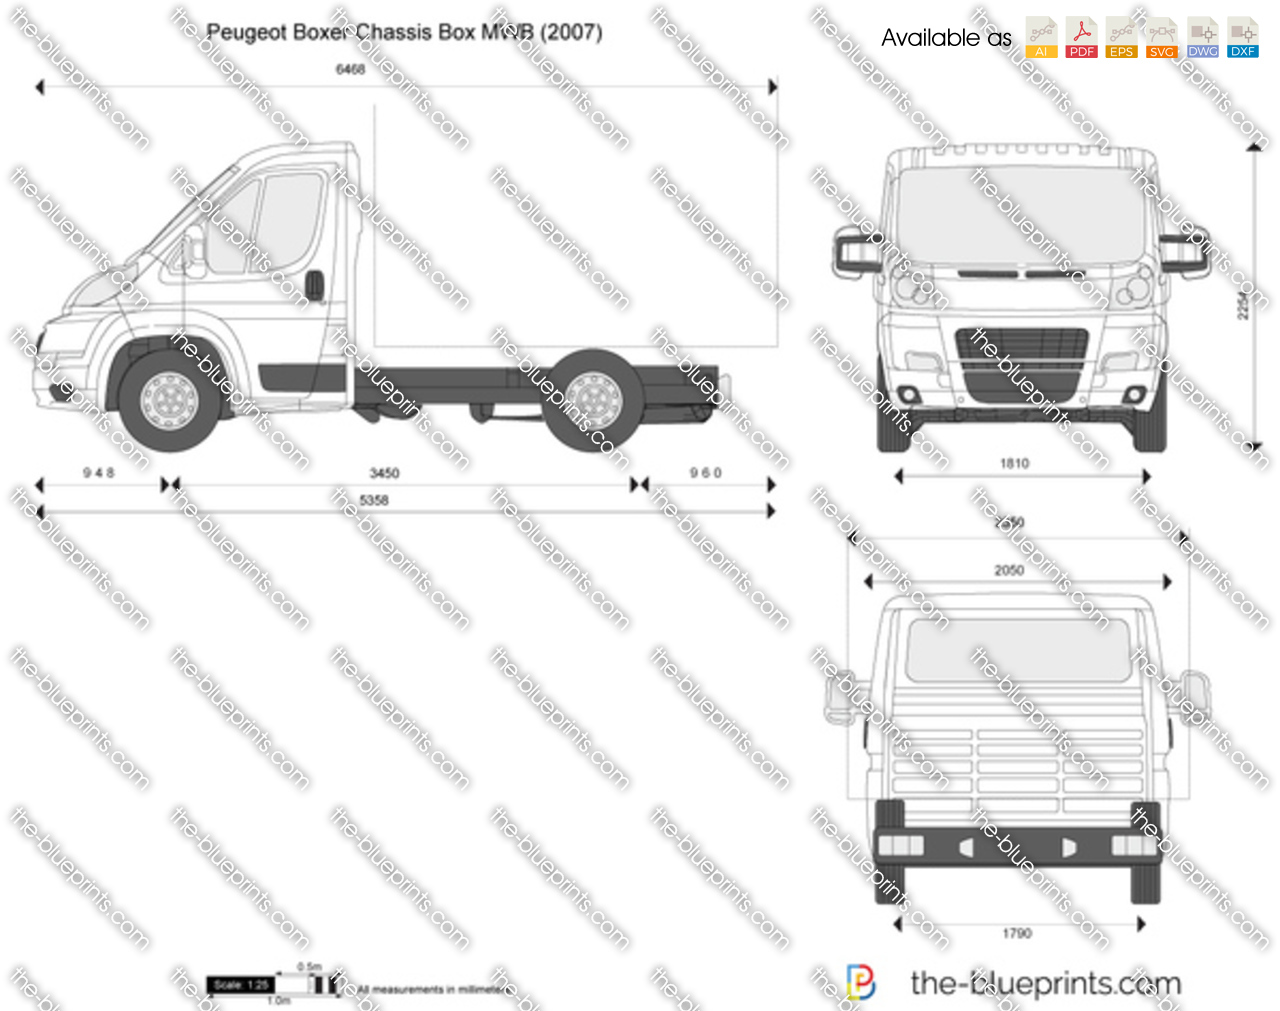 Peugeot Boxer Chassis Box MWB